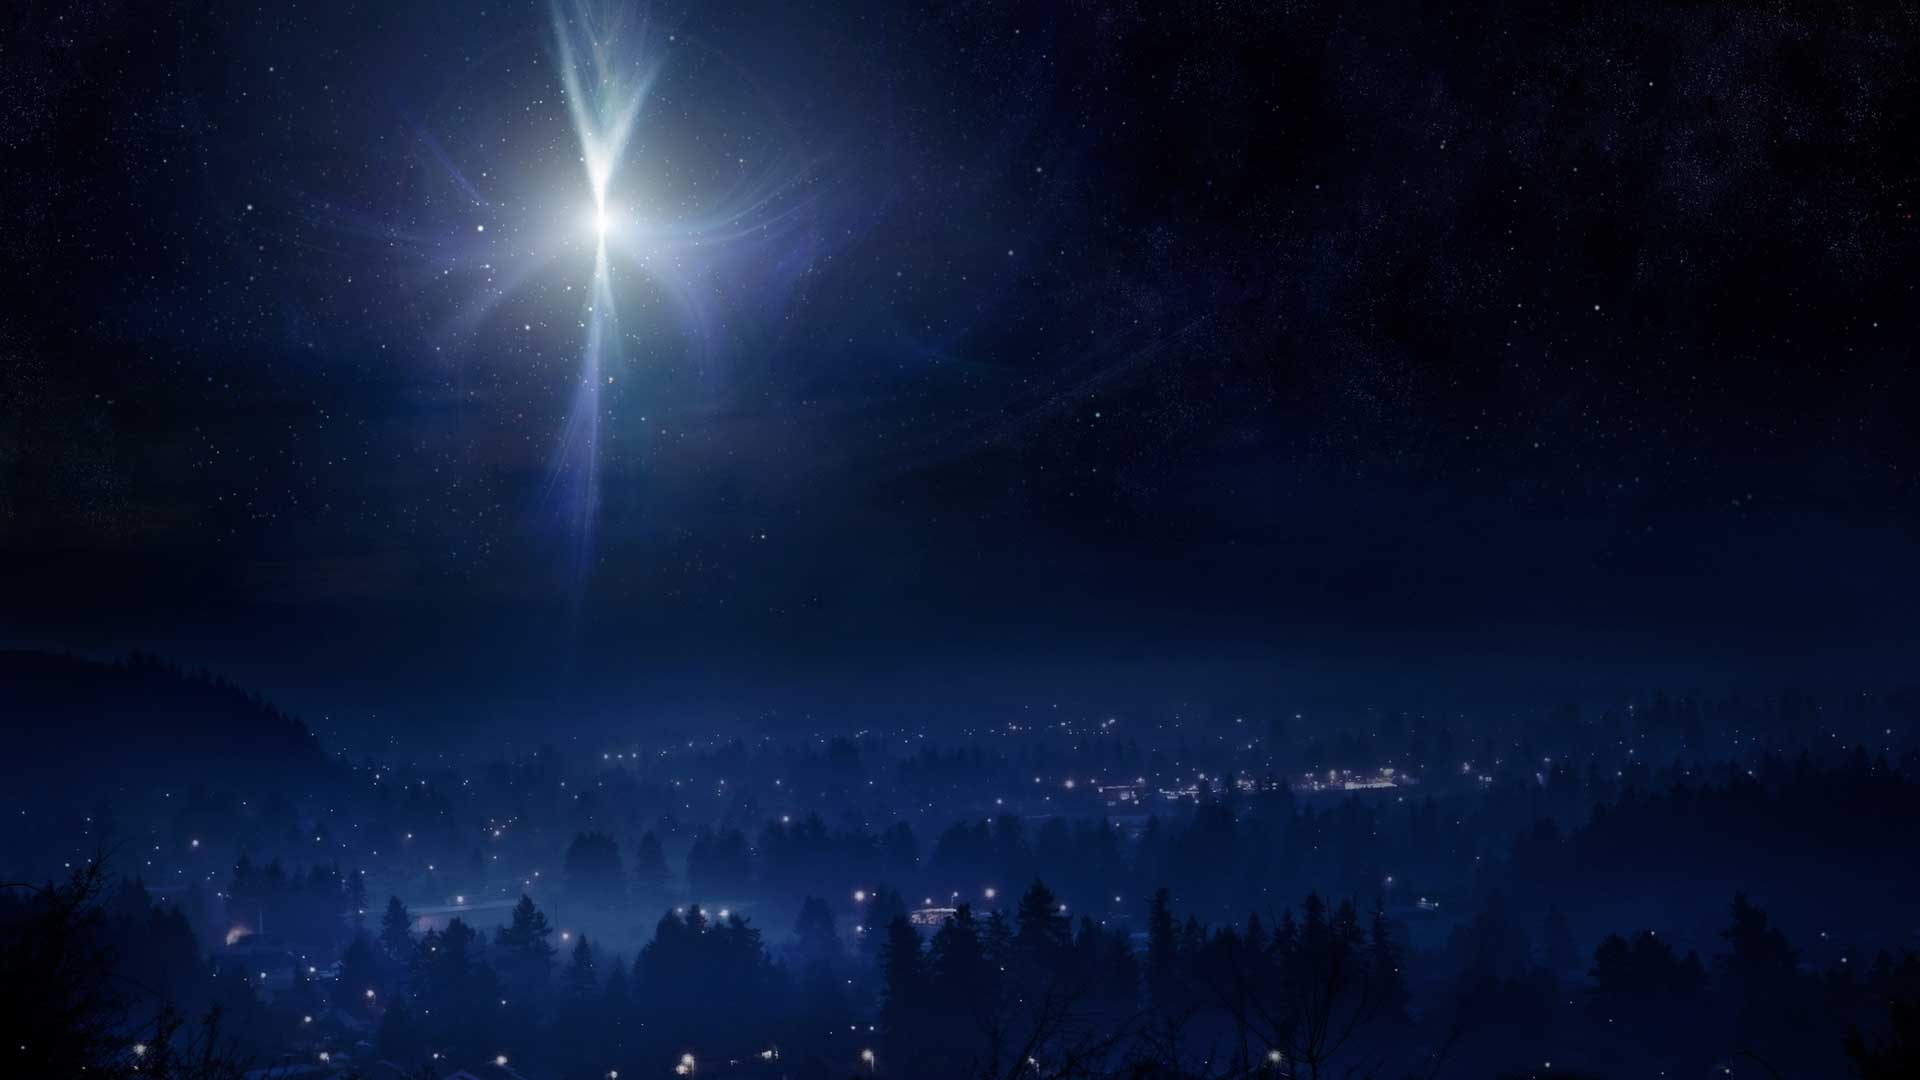 The Star Of Bethlehem Imprimis HD Wallpapers Download free images and photos [musssic.tk]